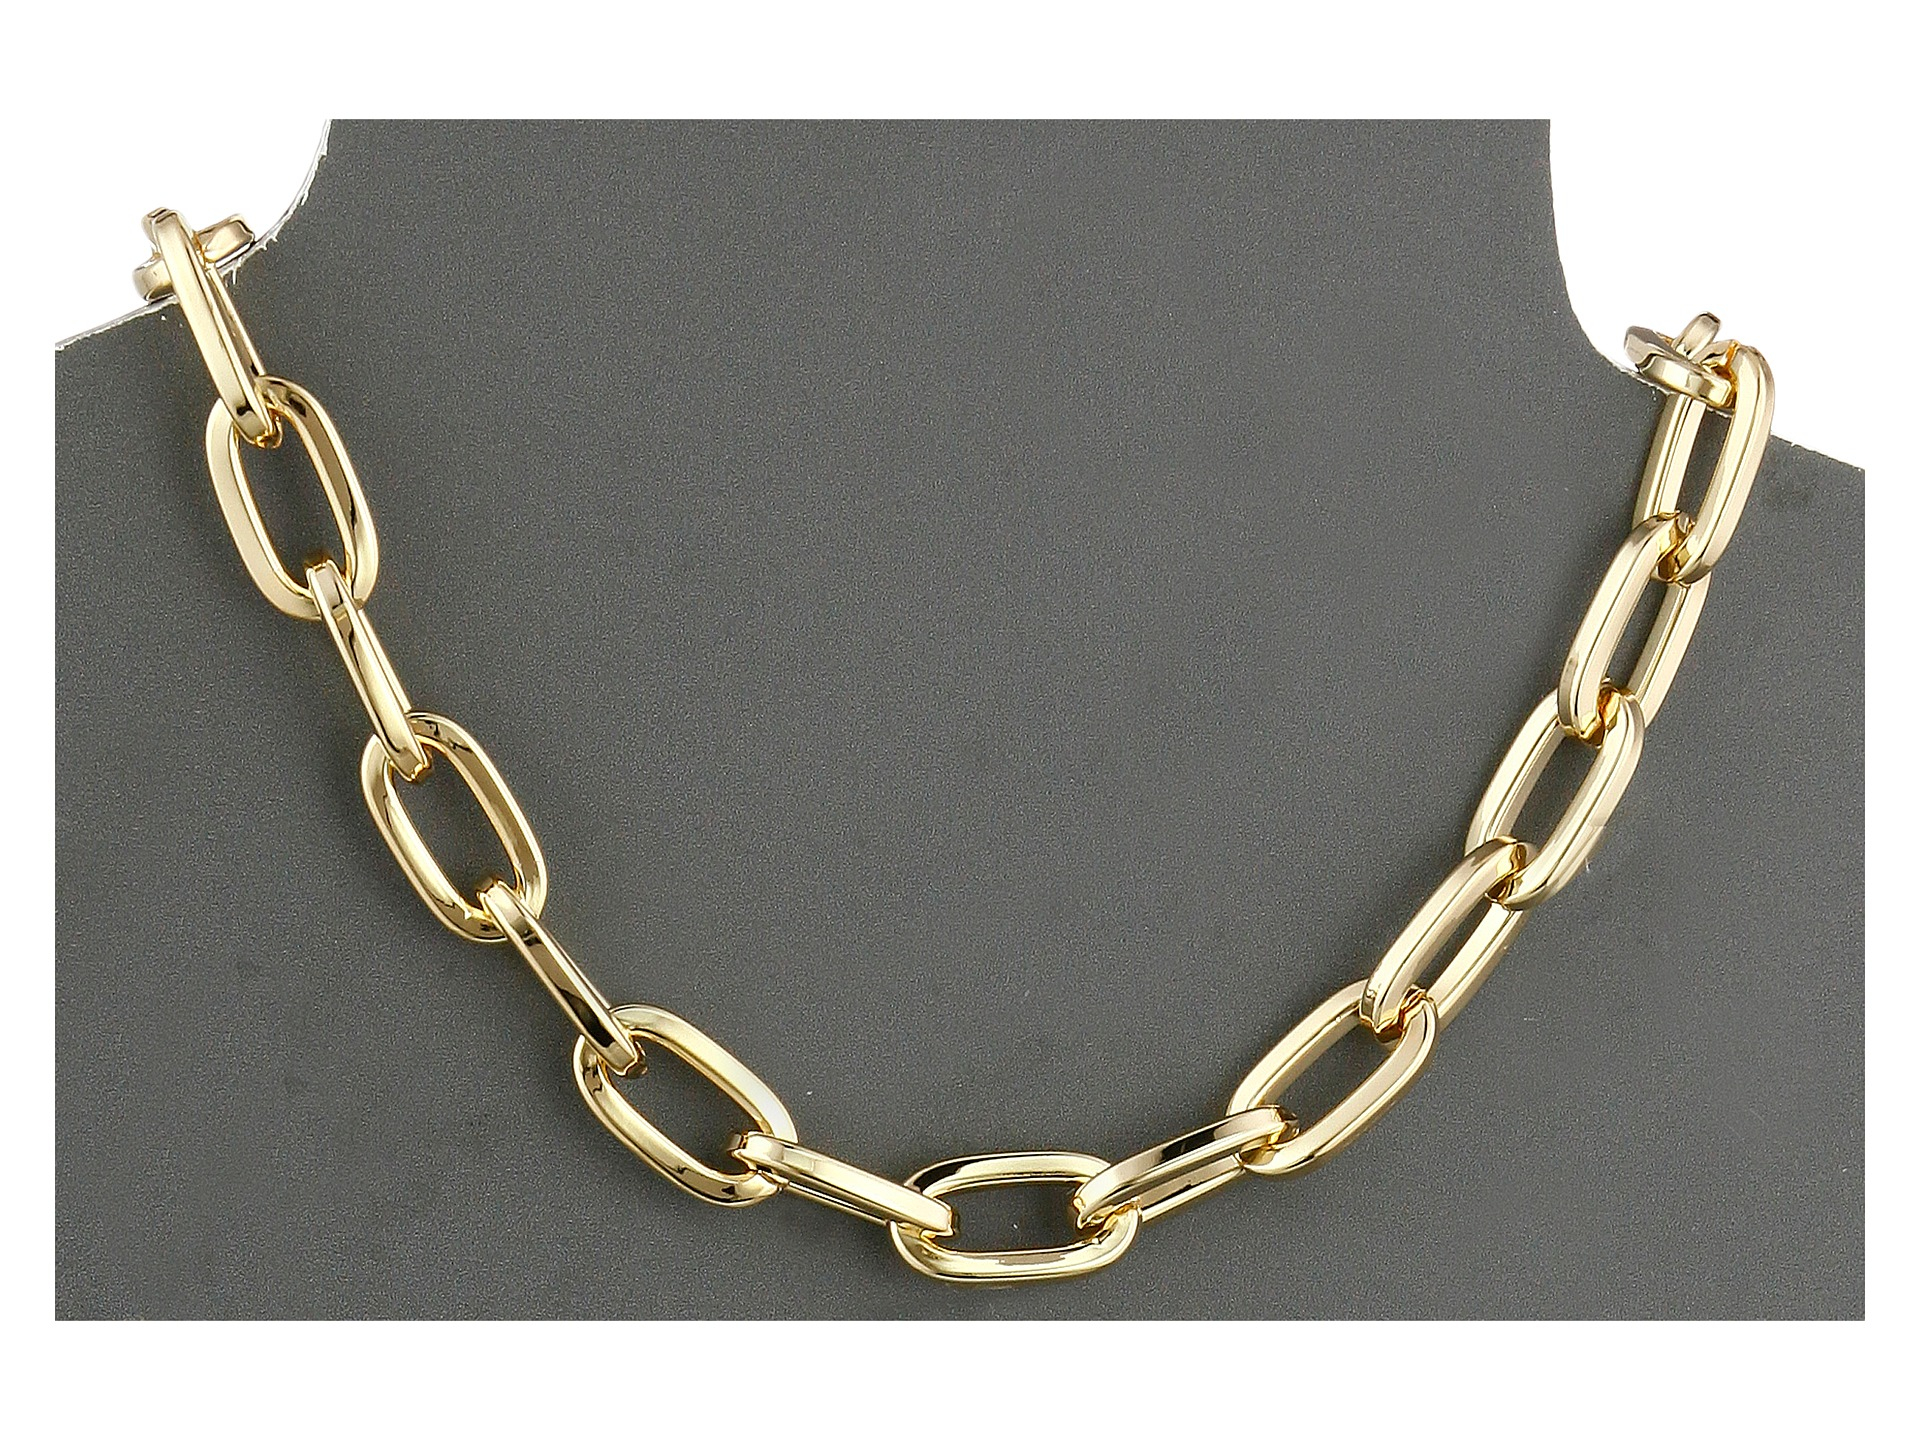 ed items necklace tiffany in link gold co long jewelry oval white chain m